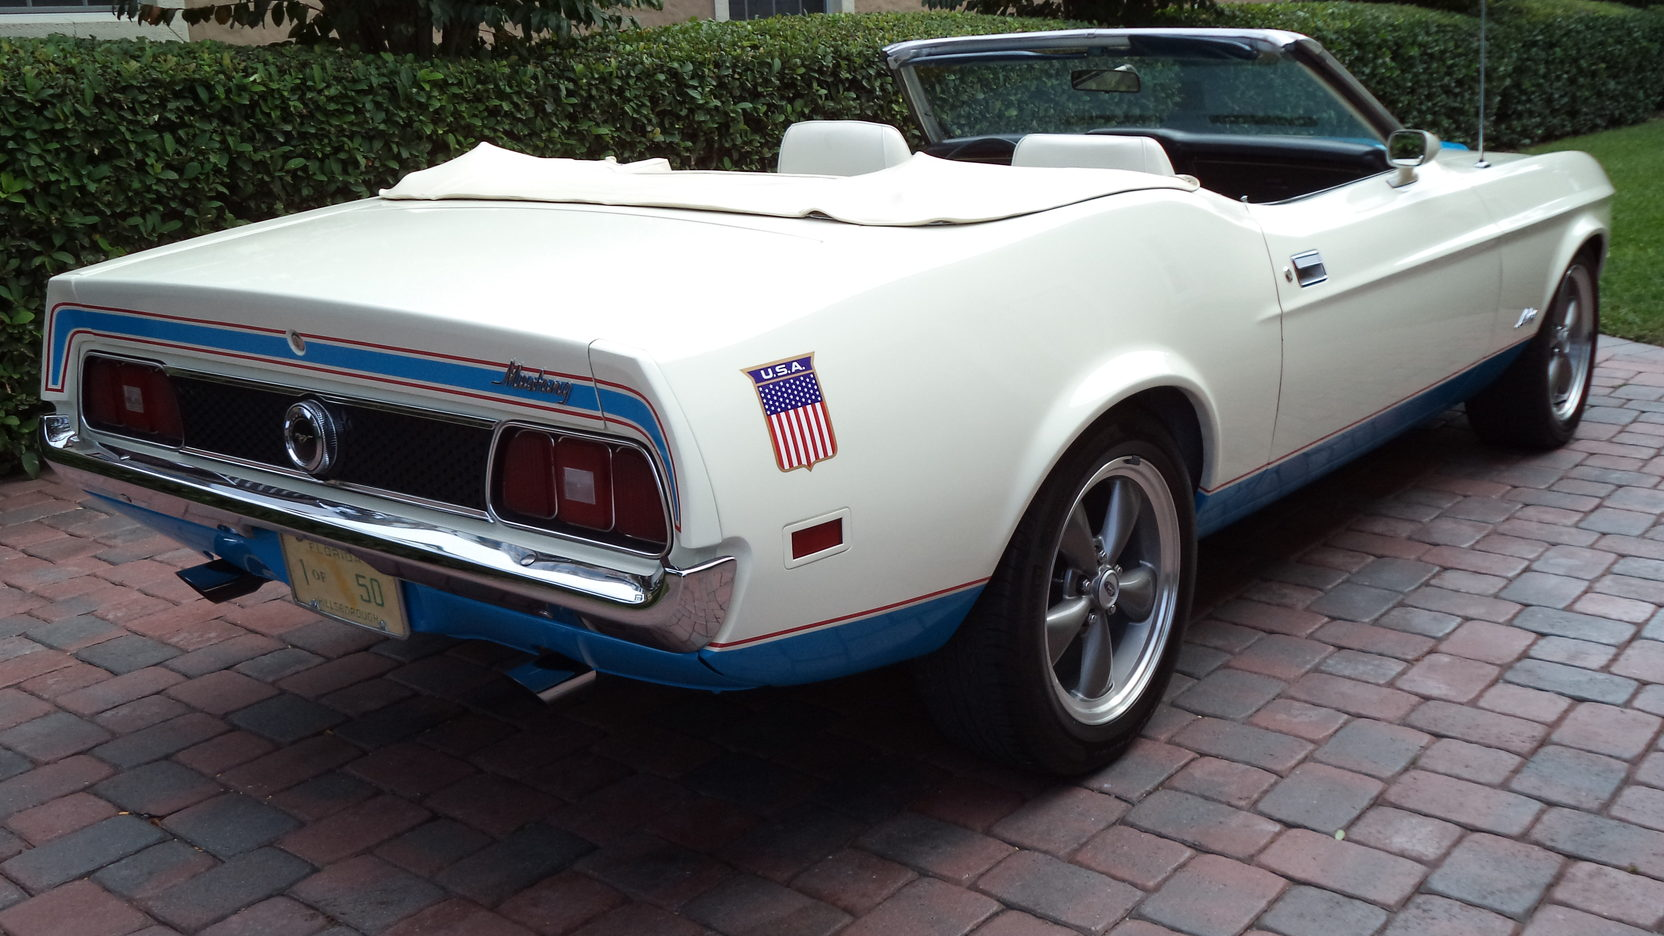 1972 Ford Mustang Sprint USA rear 3/4